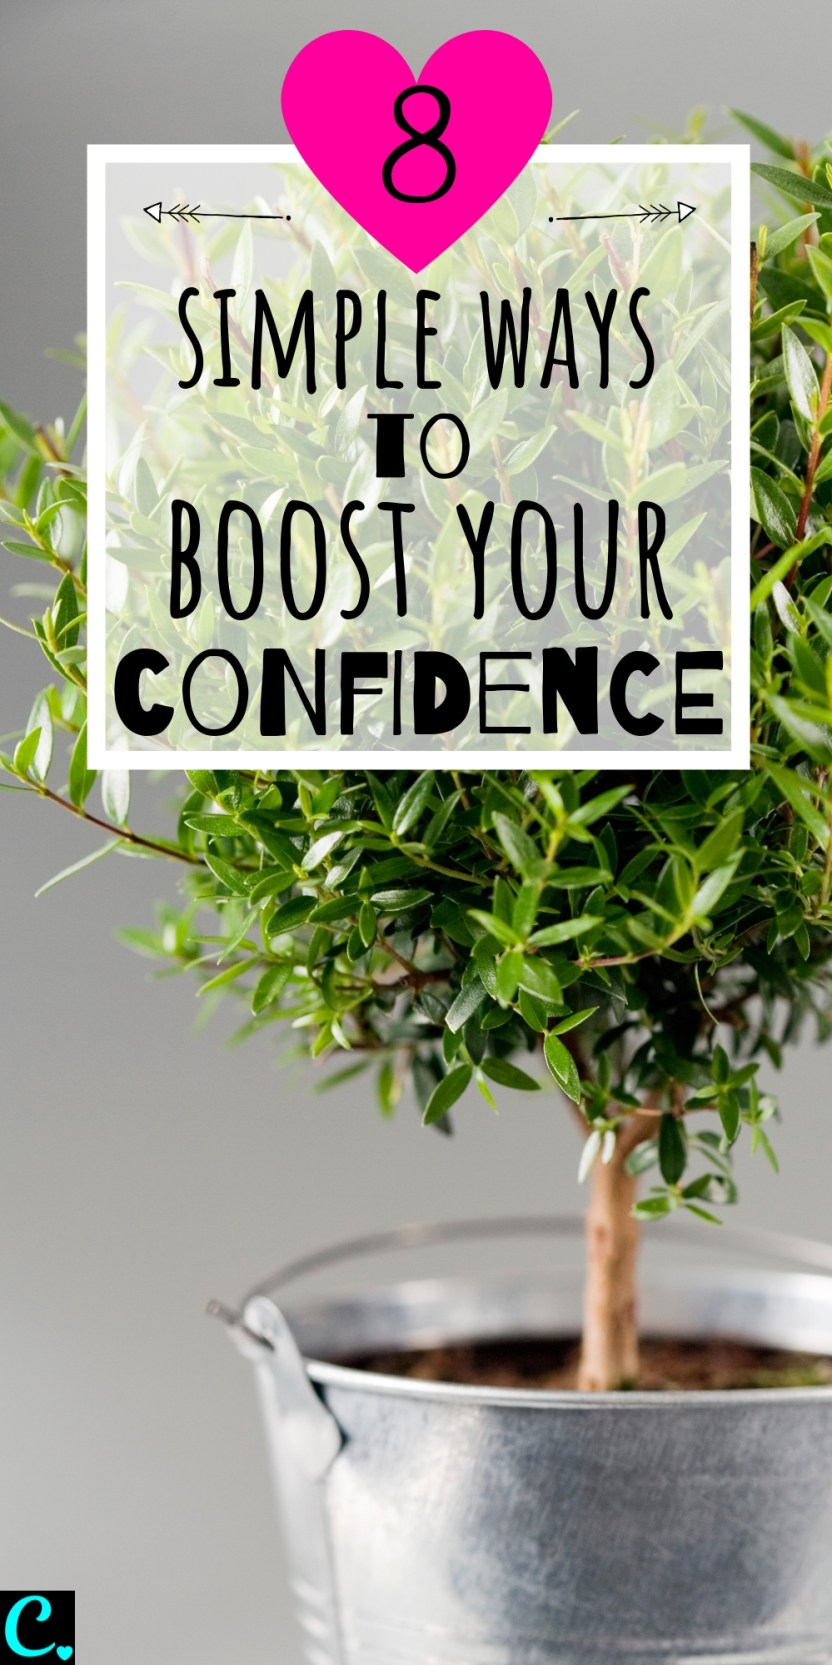 8 Simple Ways To Boost Your Confidence! These tips will help you learn how to be more confidence, be brave & face your fears so you can achieve your goals! #confidence #confidenceboost #confidentwoman #beconfident